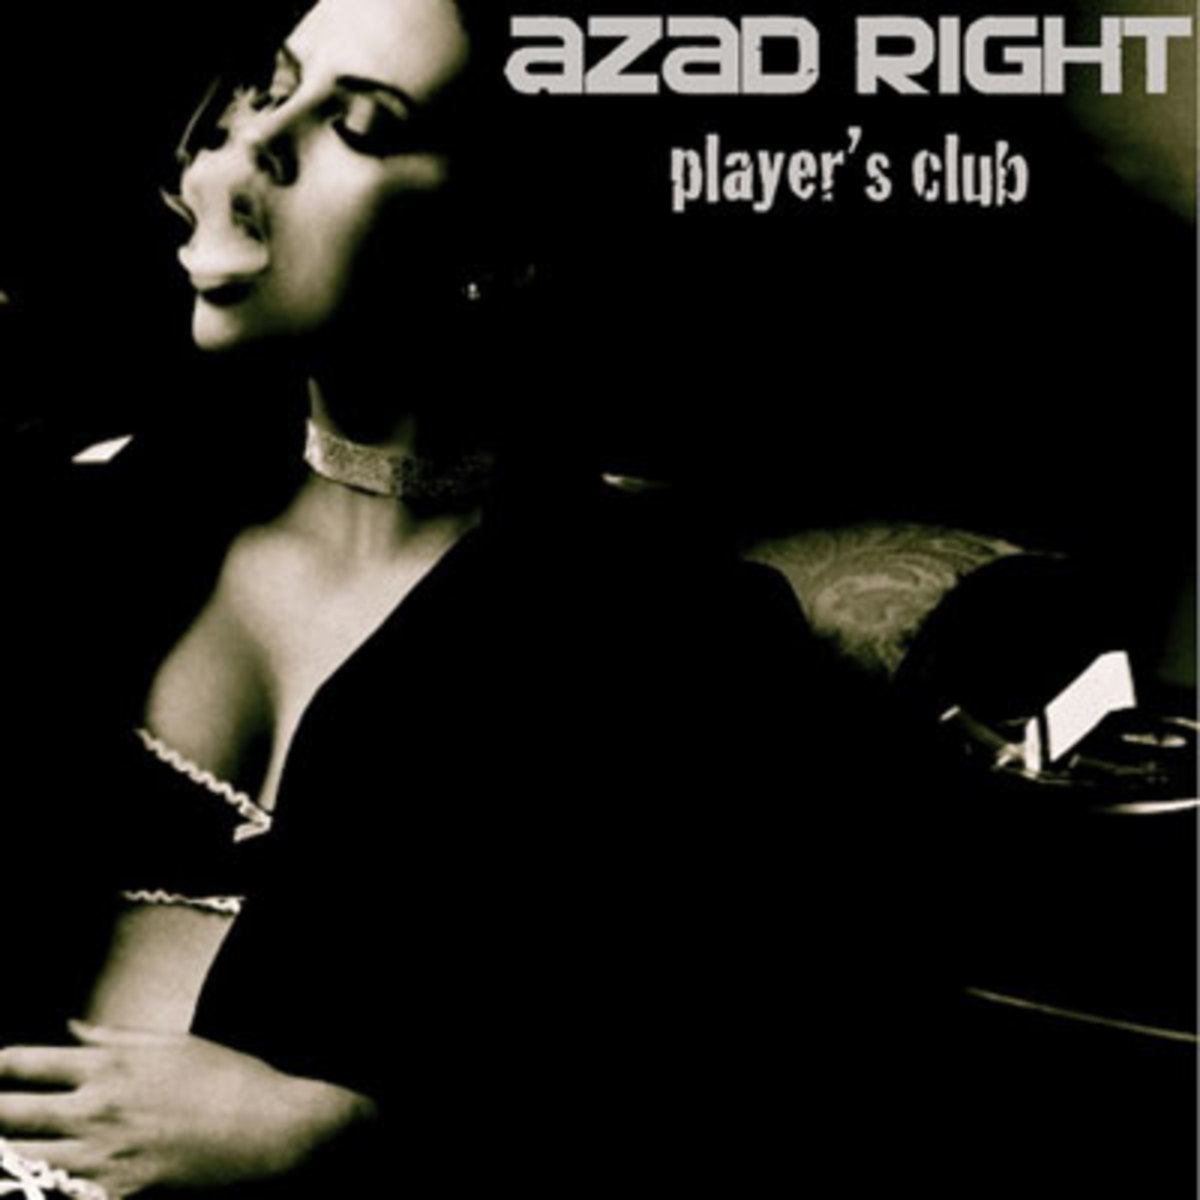 azadright-playersclub.jpg